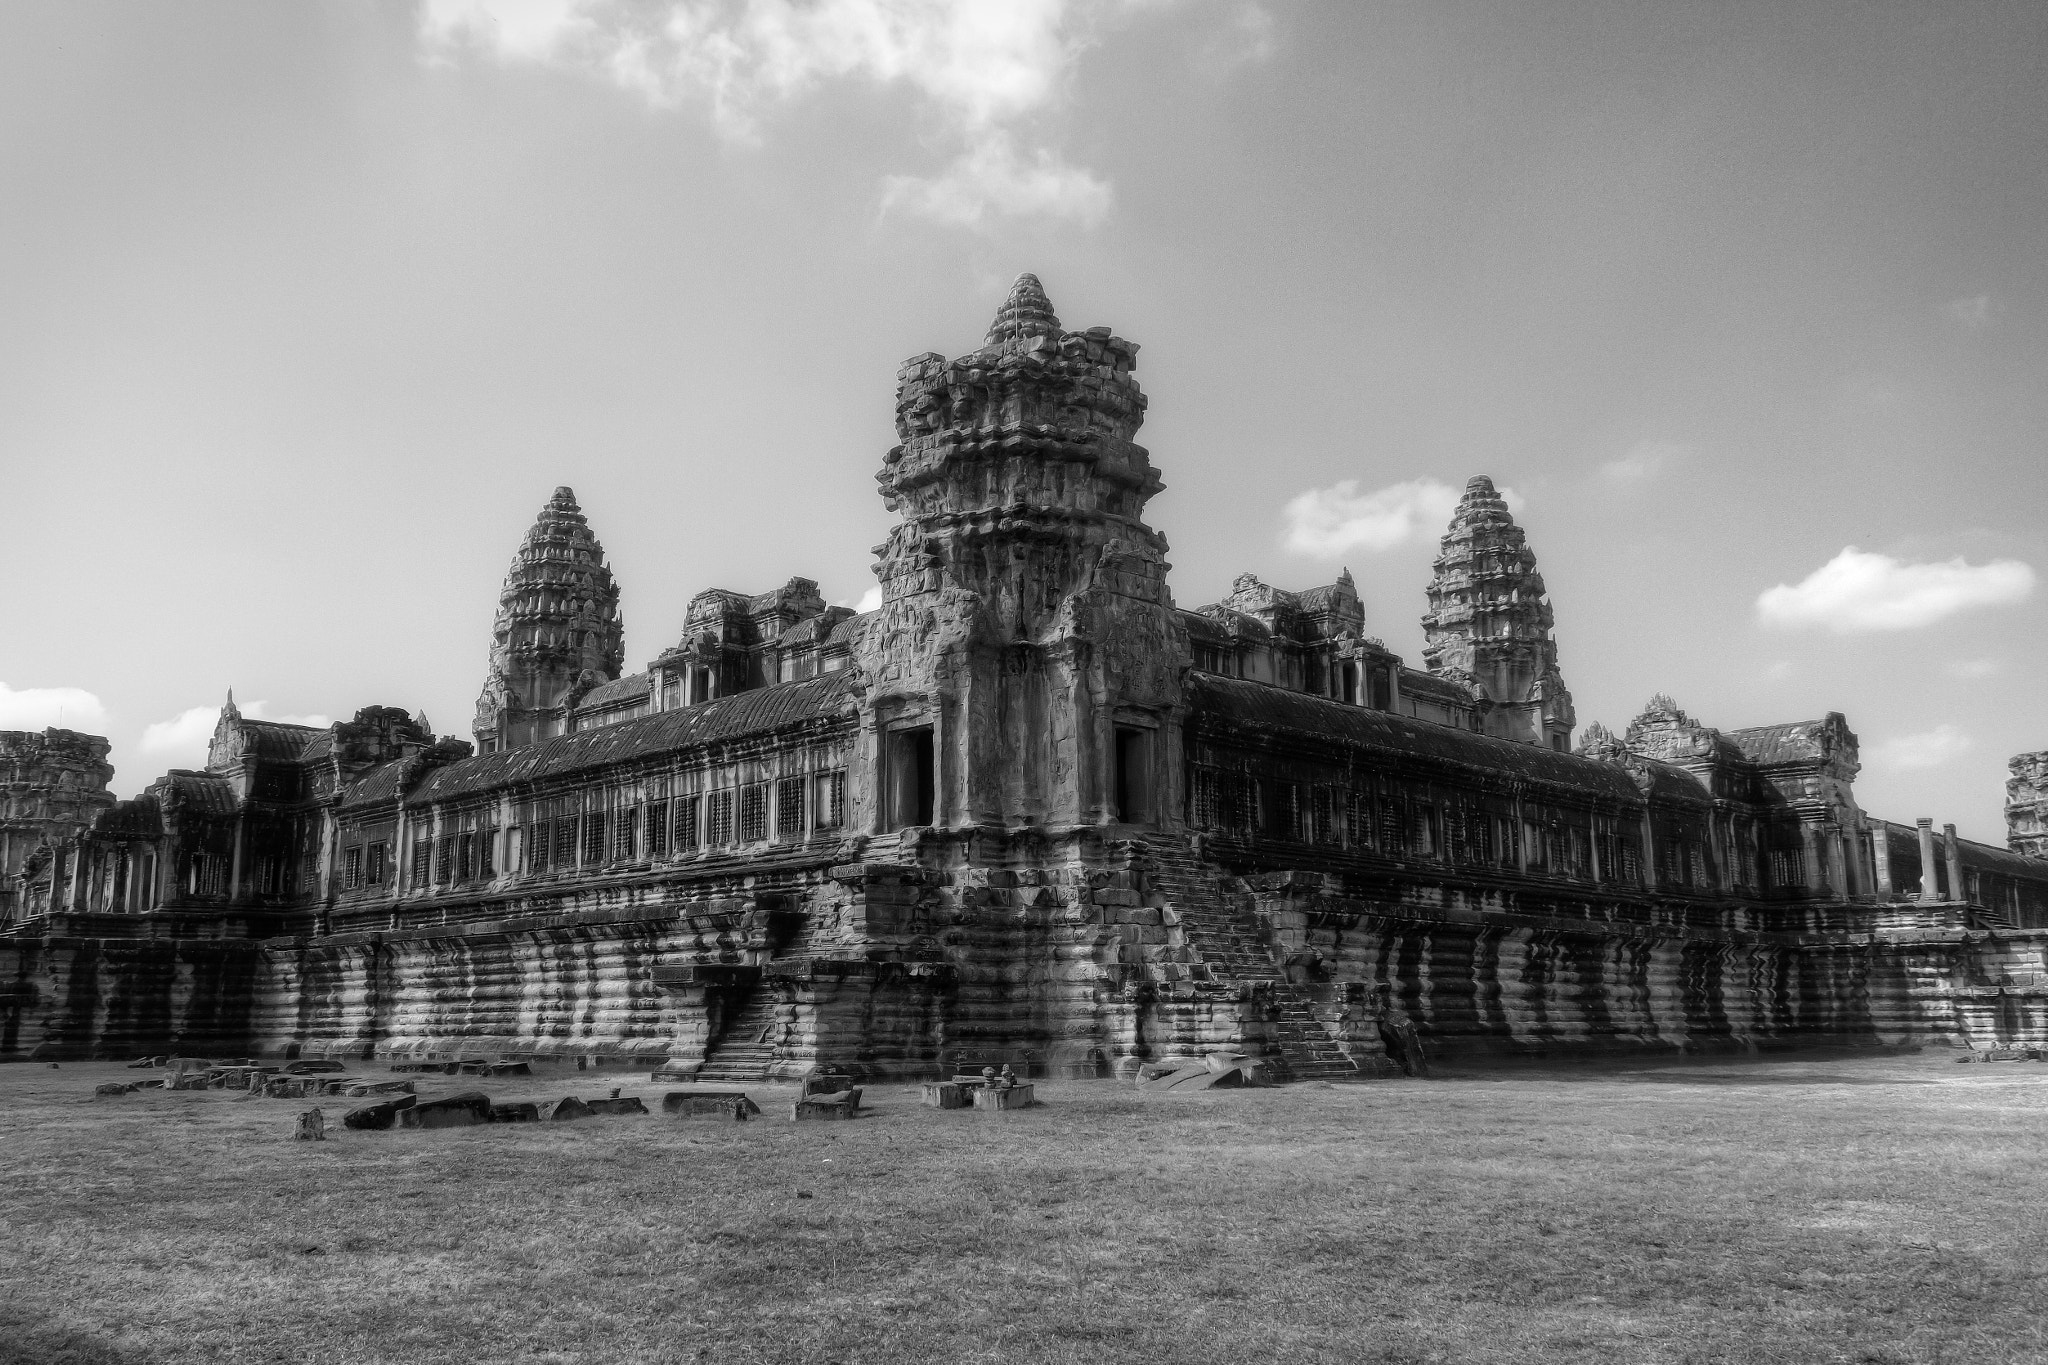 Photograph Angkor Wat by Julien Graziano on 500px